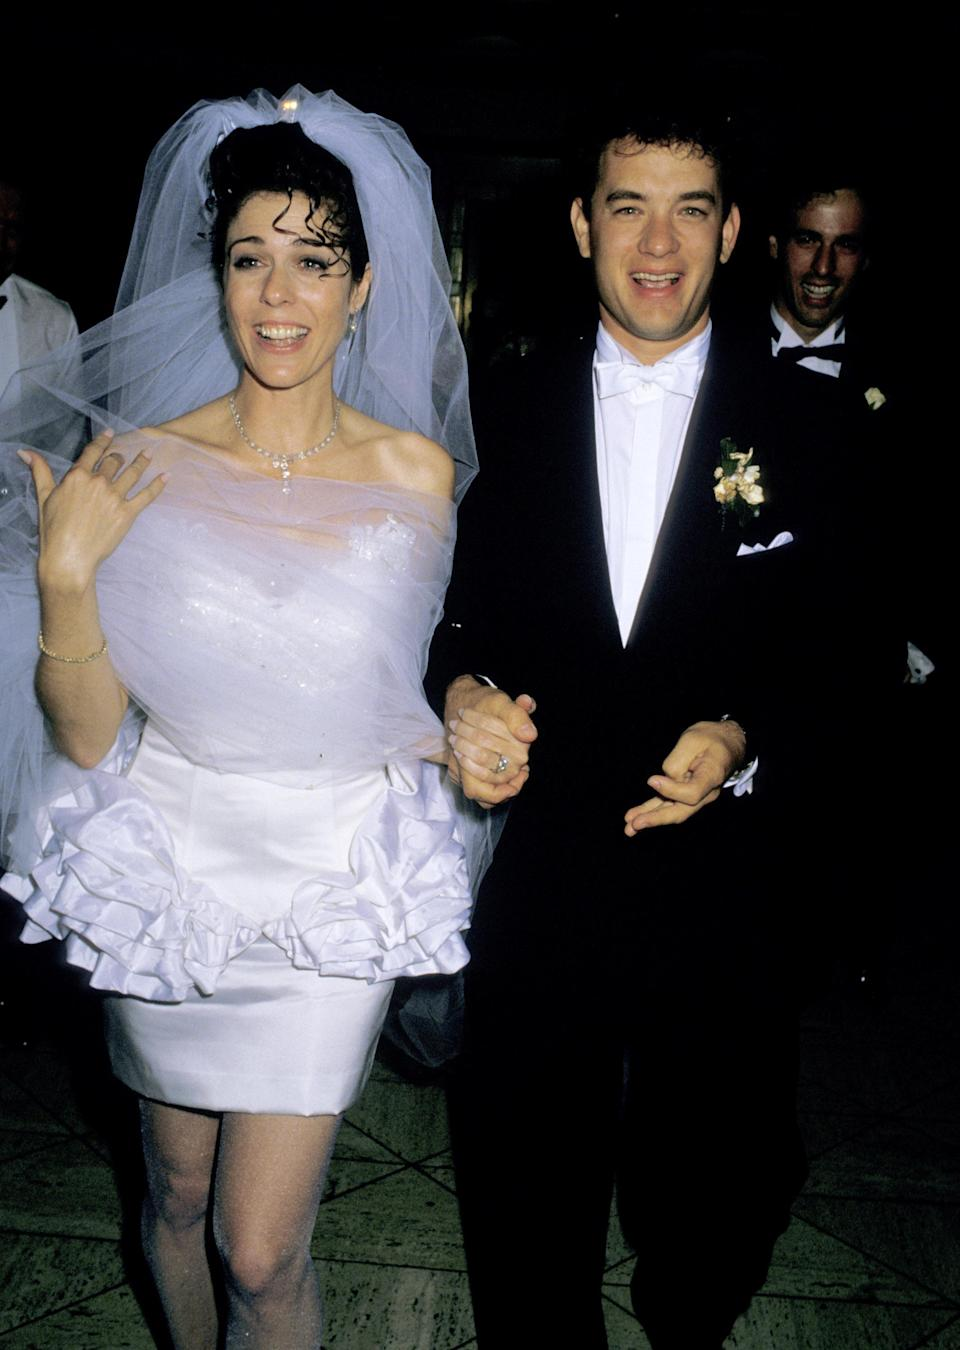 Wilson and Hanks at their wedding reception on April 30, 1988. (Photo: Ron Galella/WireImage)